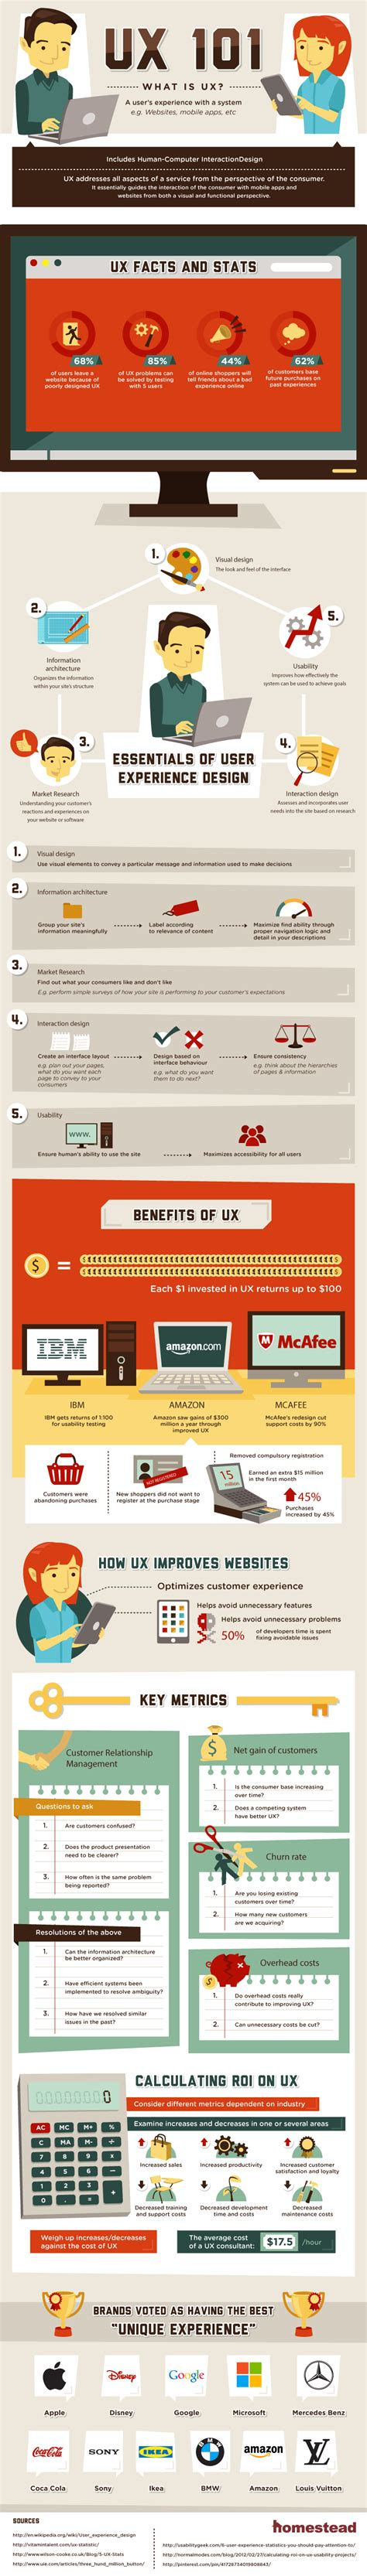 ux design defined user experience ux design infographic ux 101 what is user experience dham s blog